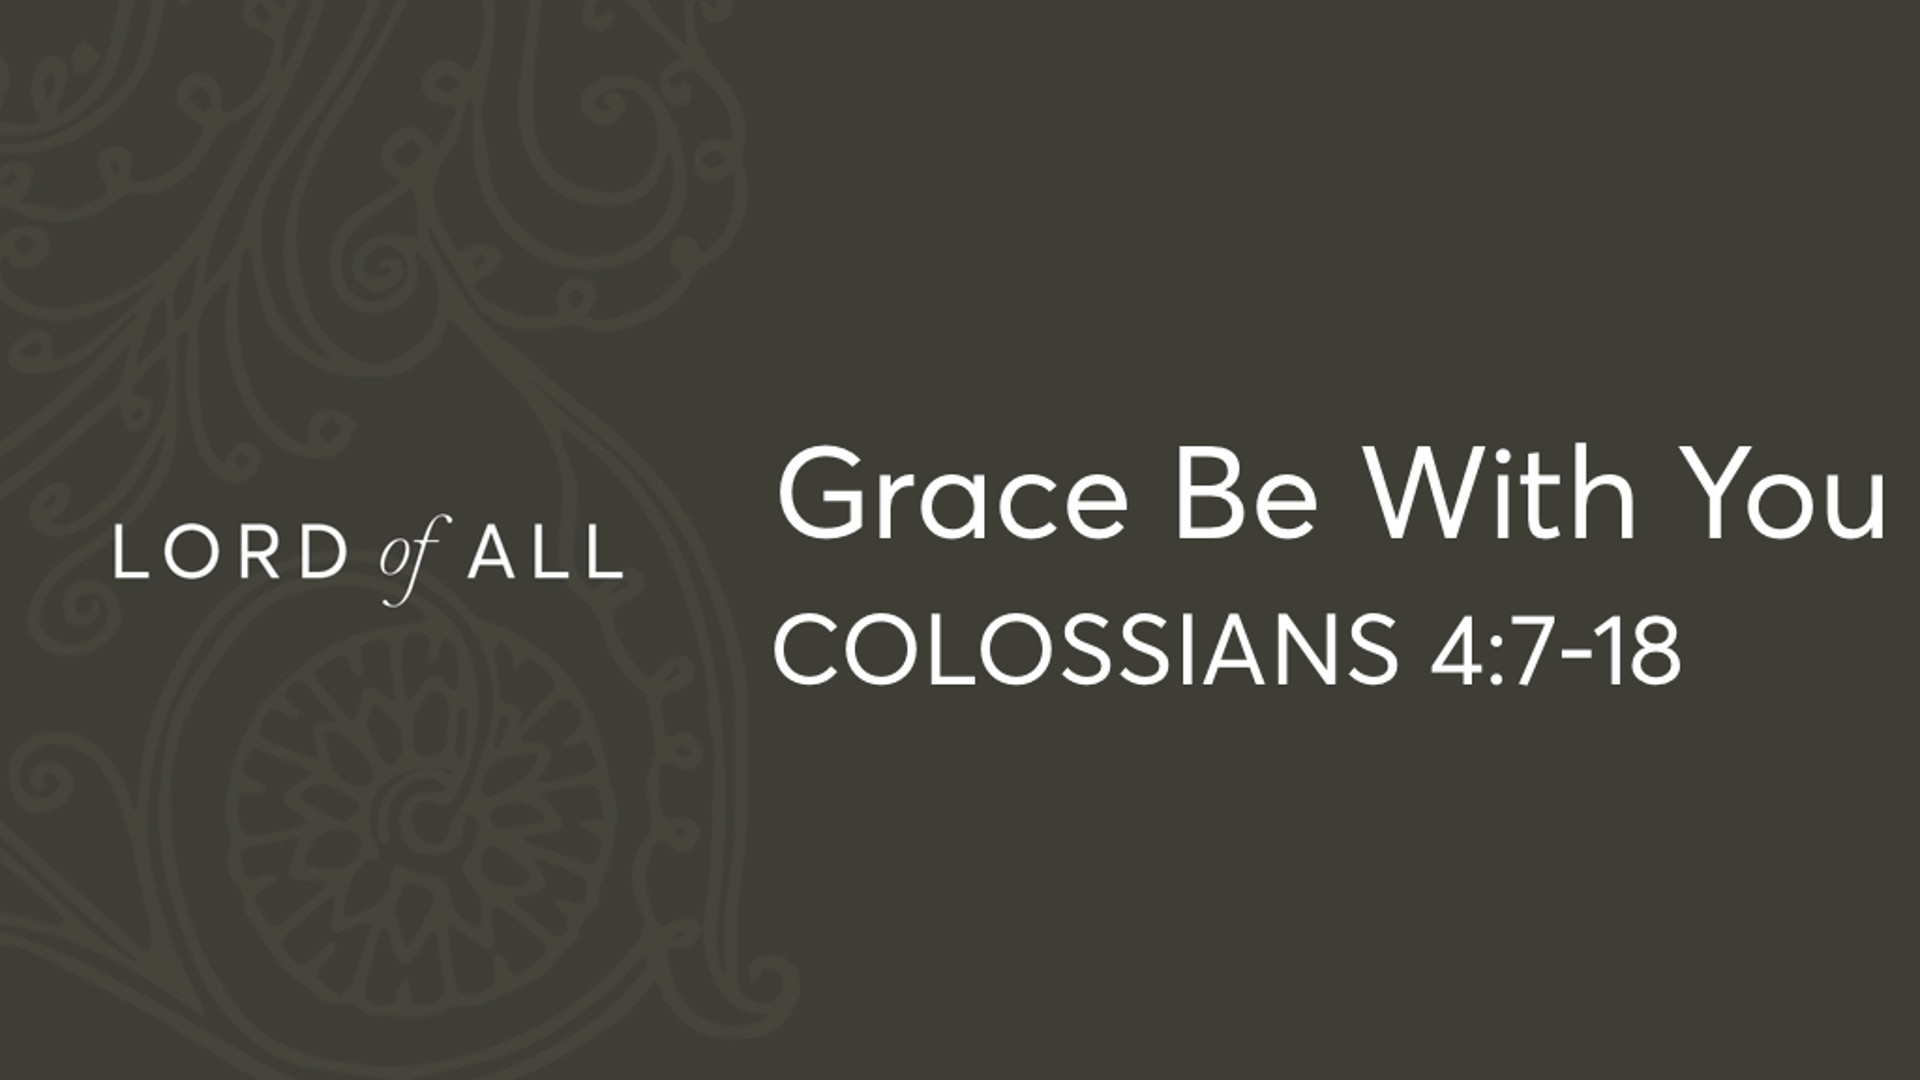 Col 4.7-18 - Grace Be With You.jpg